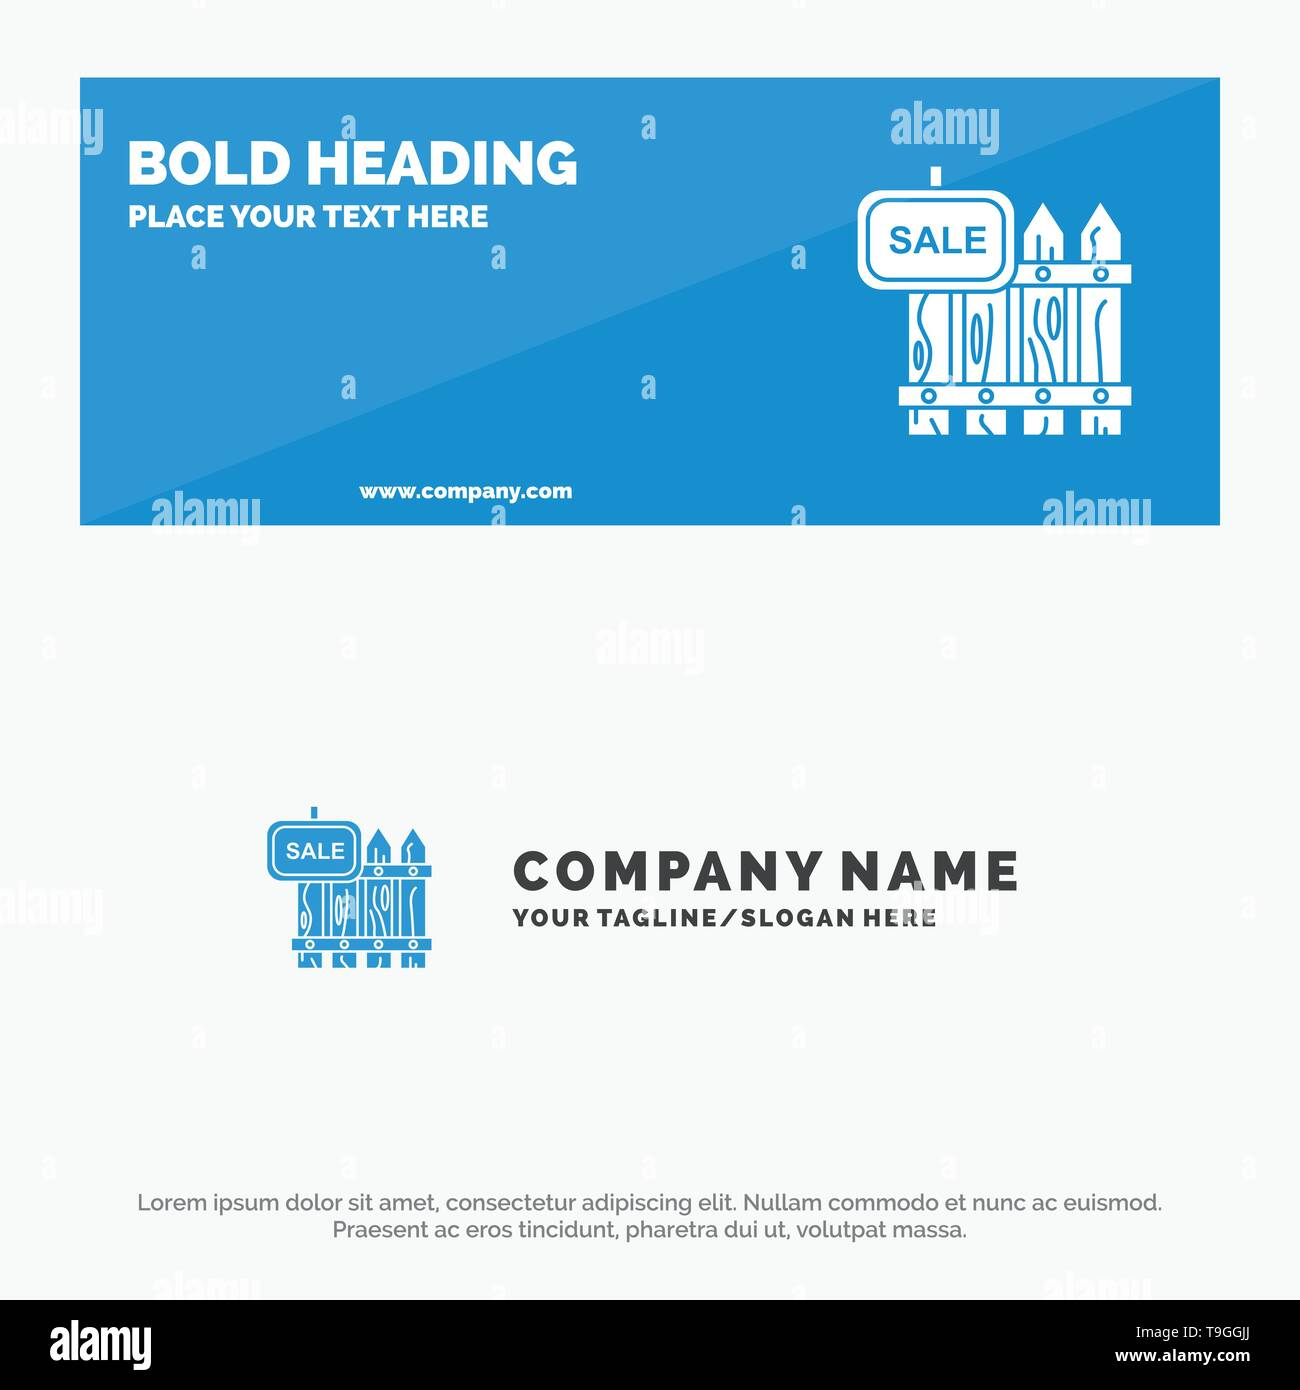 Fence, Wood, Realty, Sale, Garden, House SOlid Icon Website Banner and Business Logo Template - Stock Image